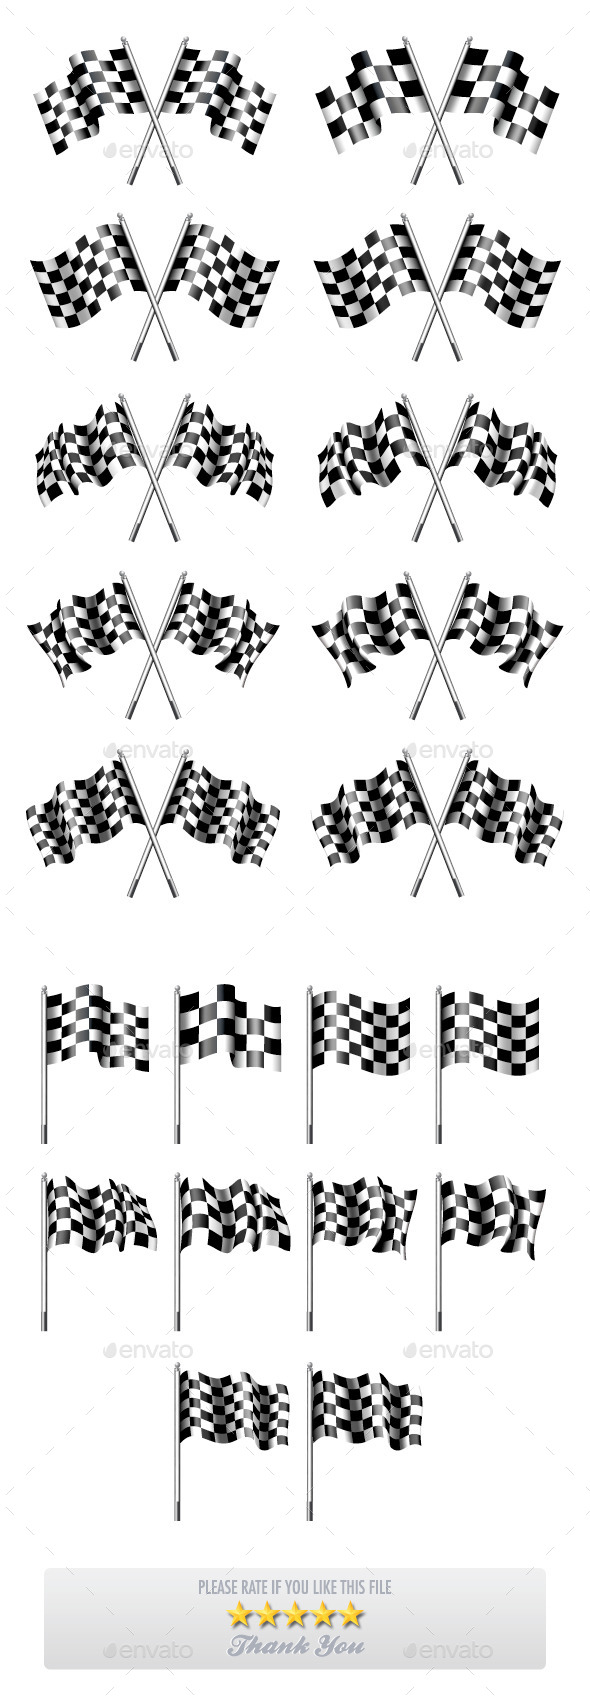 GraphicRiver 10 Versions of Chequered Flags 9990926